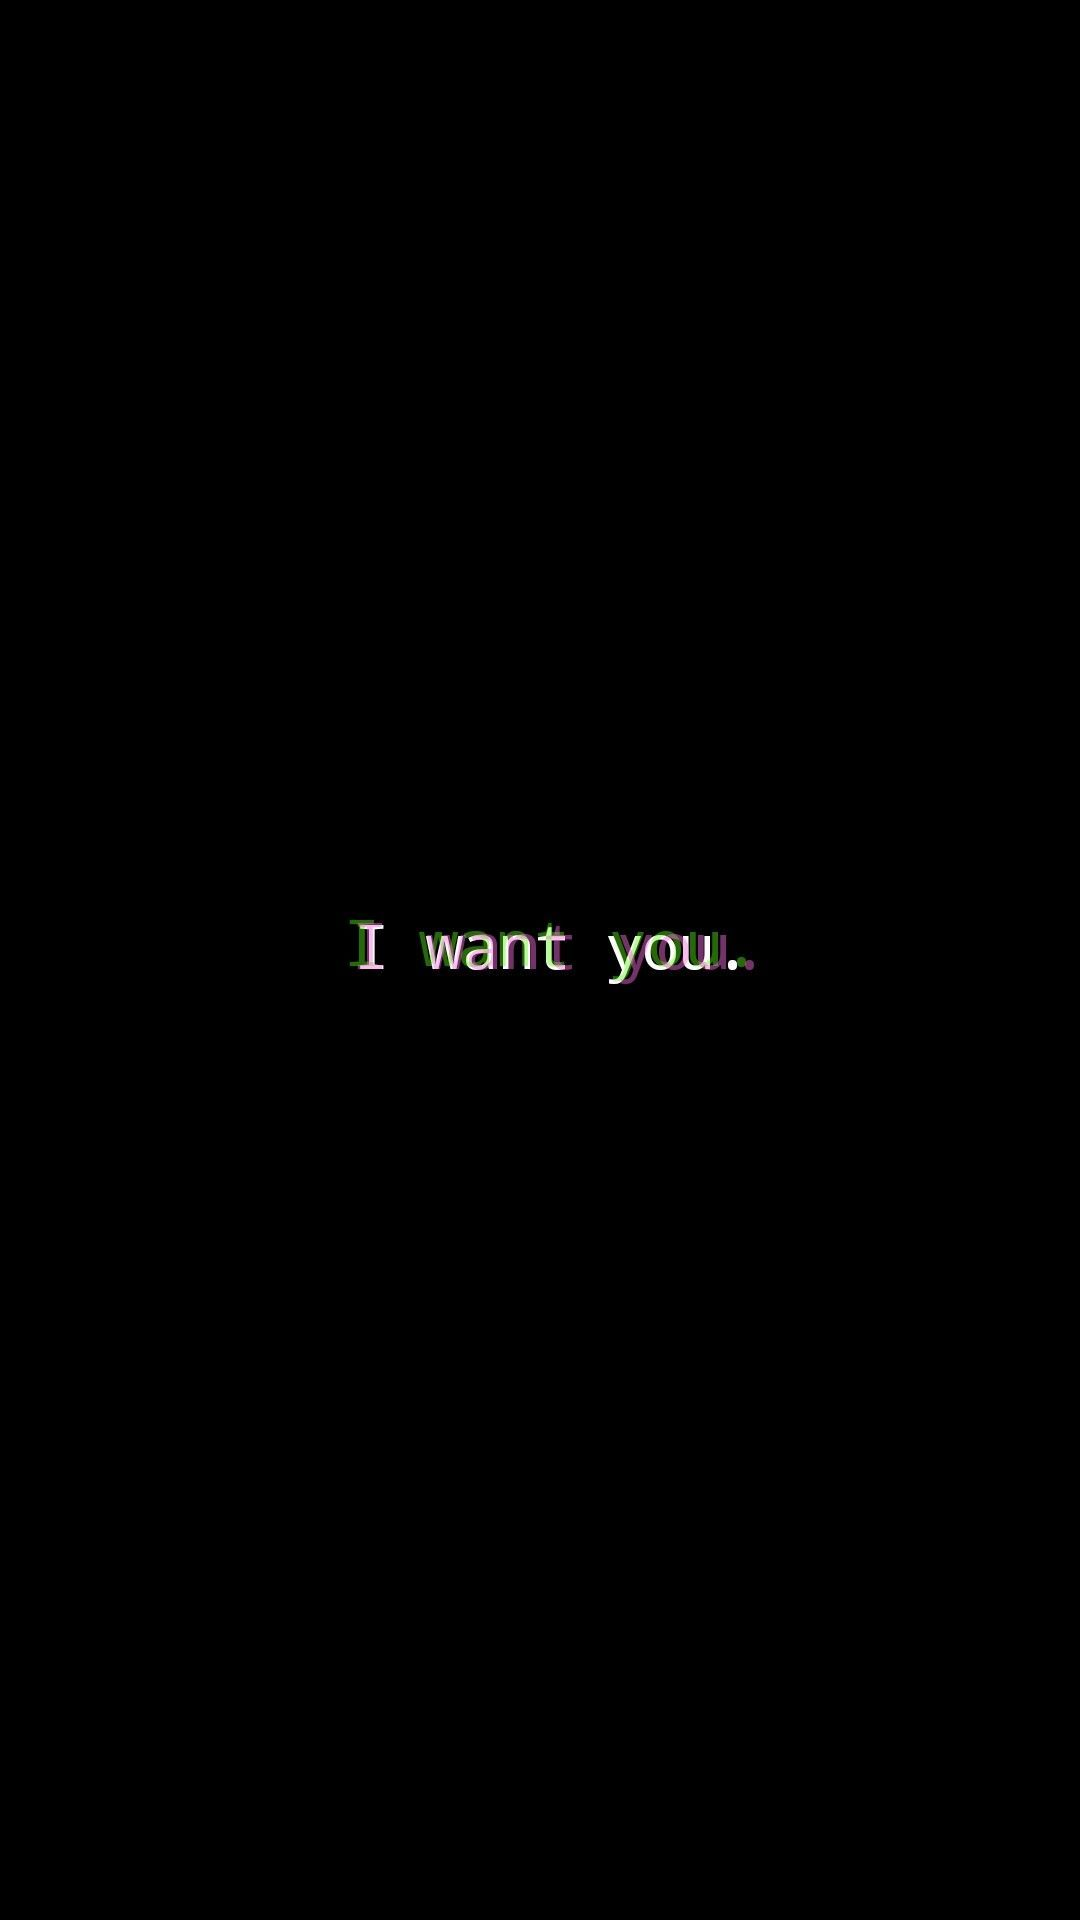 I want you aesthetic wallpaper in 2020 | Wallpaper quotes ...